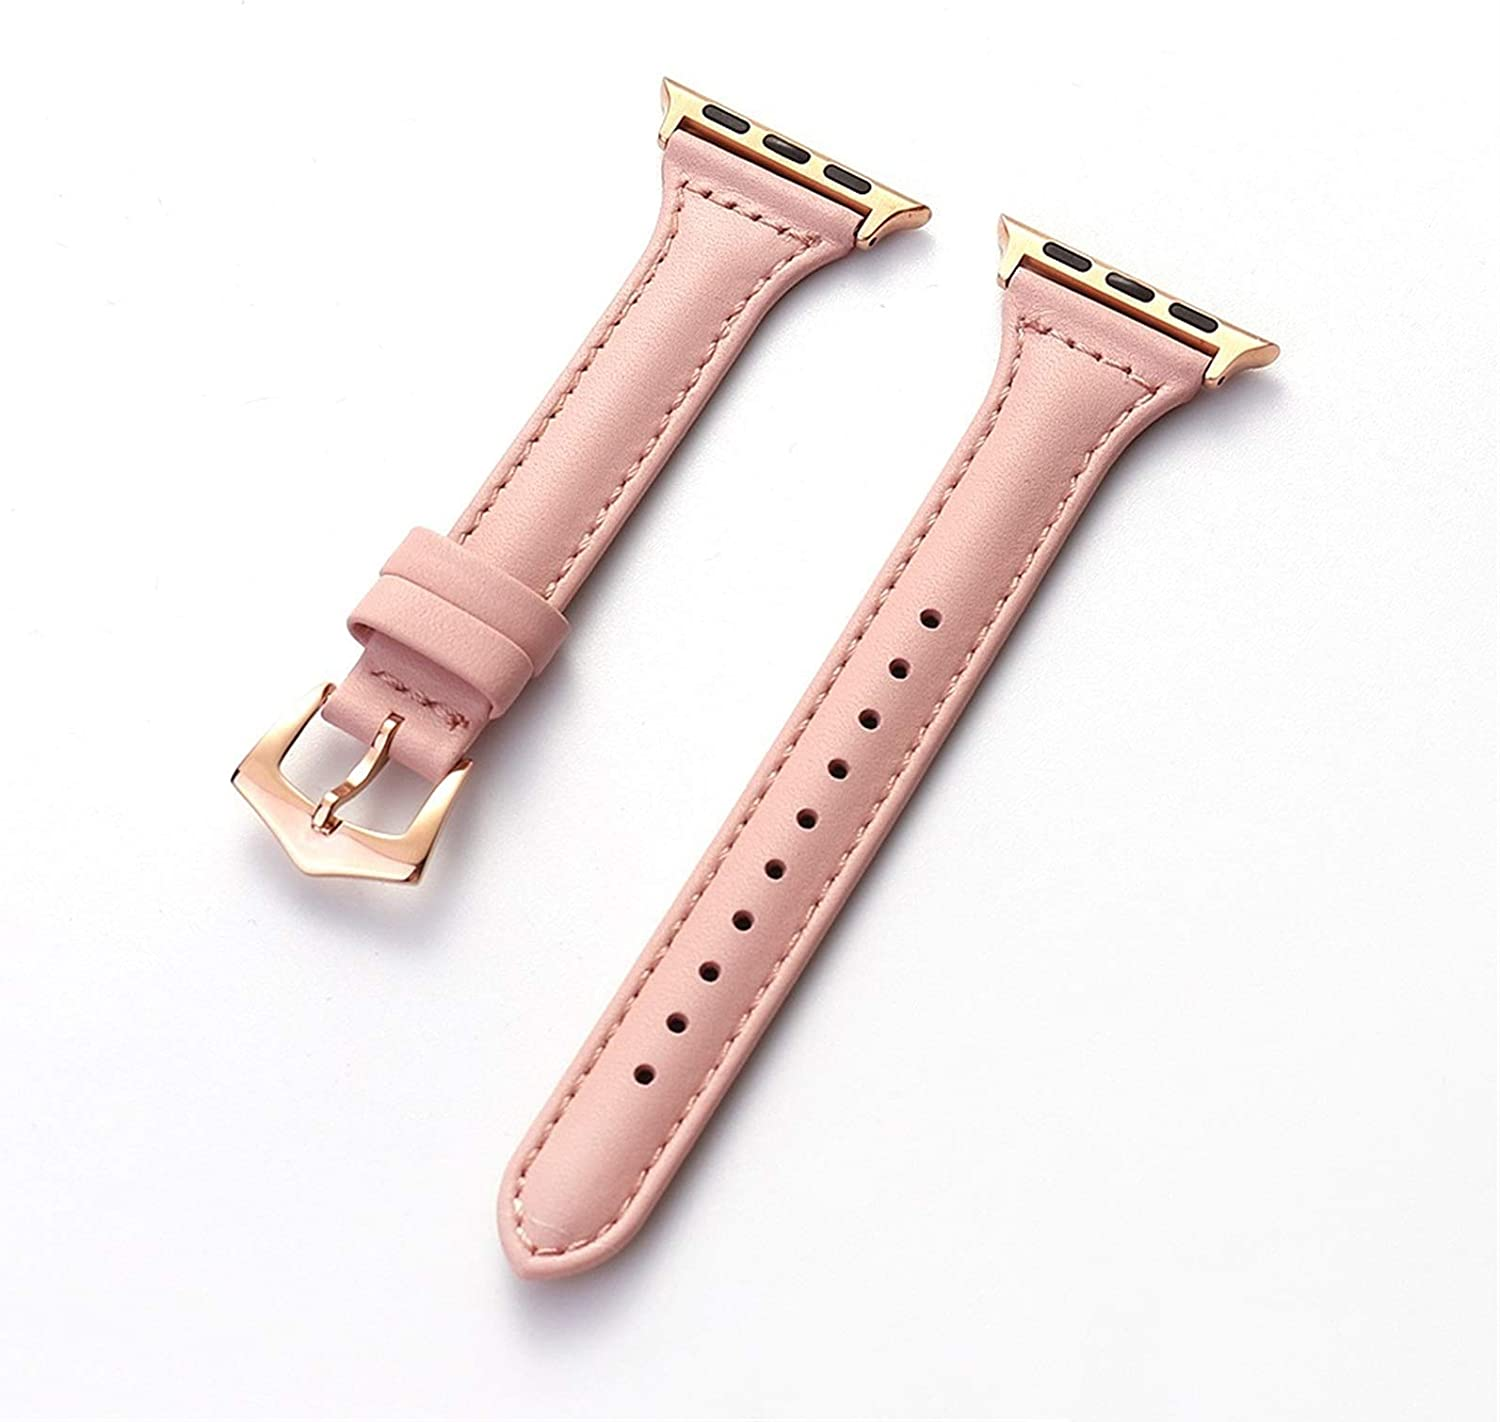 ZAALFC Houston Mall Genuine Leather Strap for Cheap sale Apple 44mm Watch 40mm Band 42mm